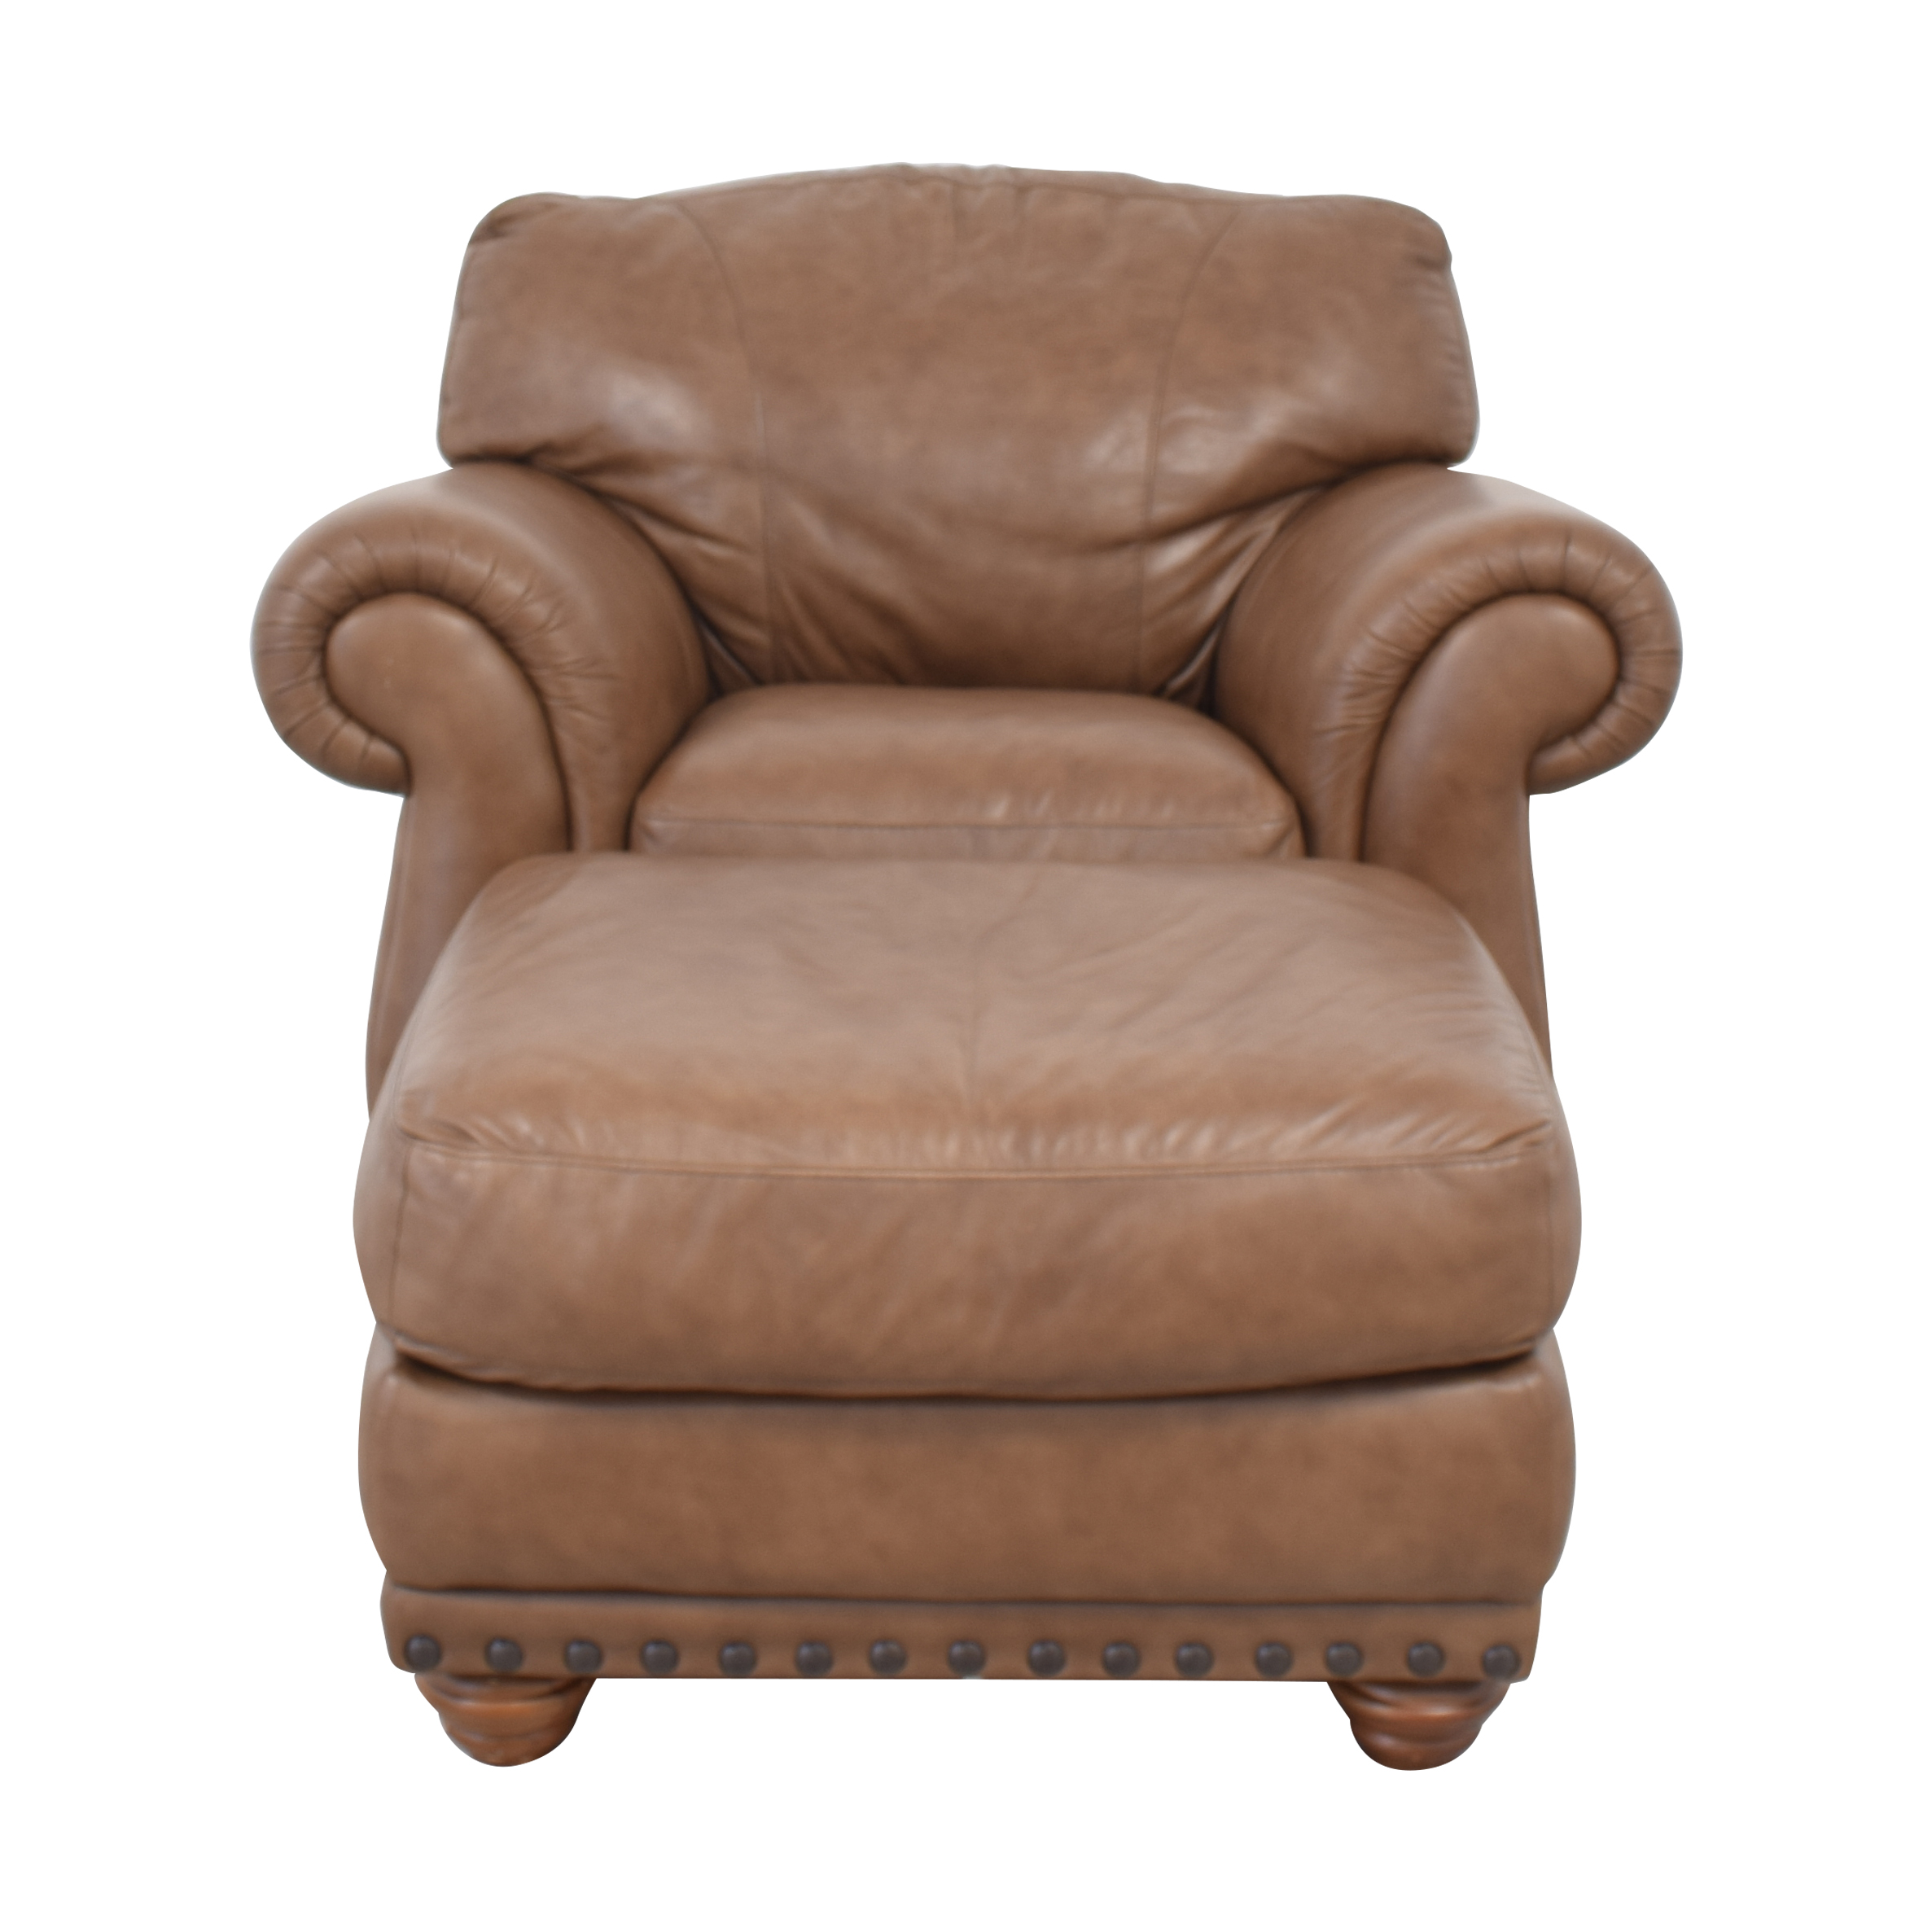 Italsofa Accent Chair with Ottoman / Accent Chairs